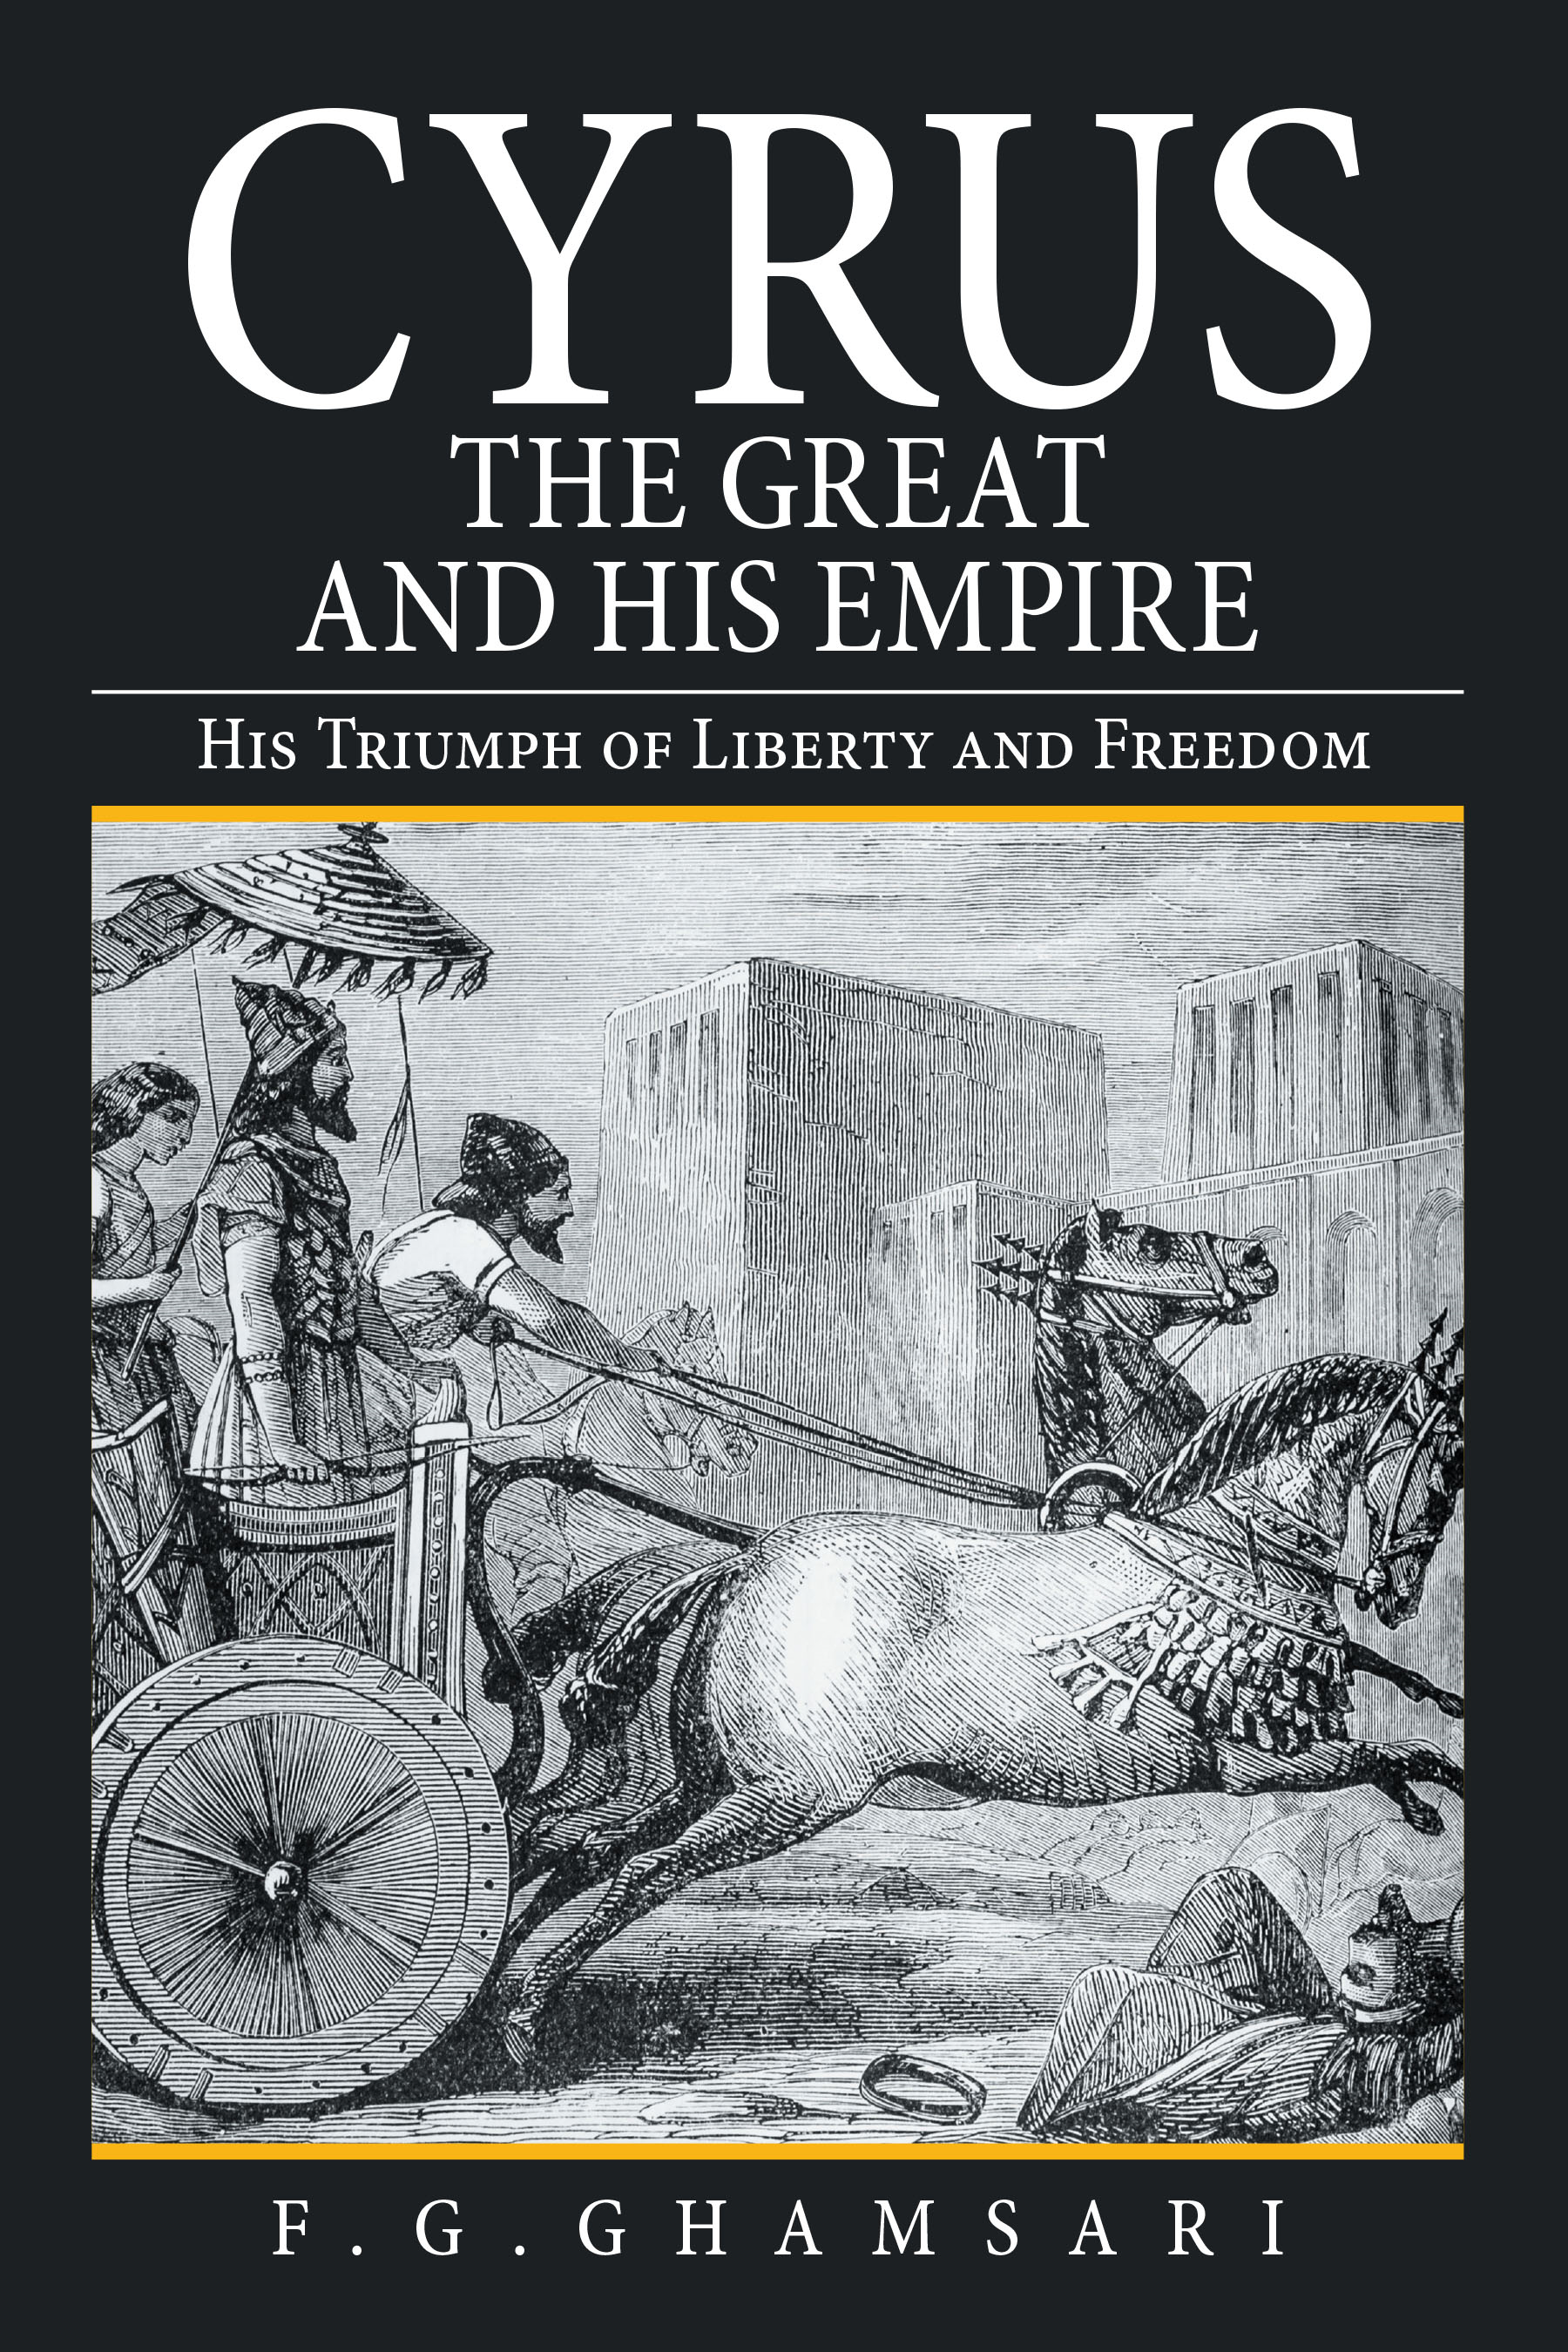 Cyrus the Great Empire and His Empire